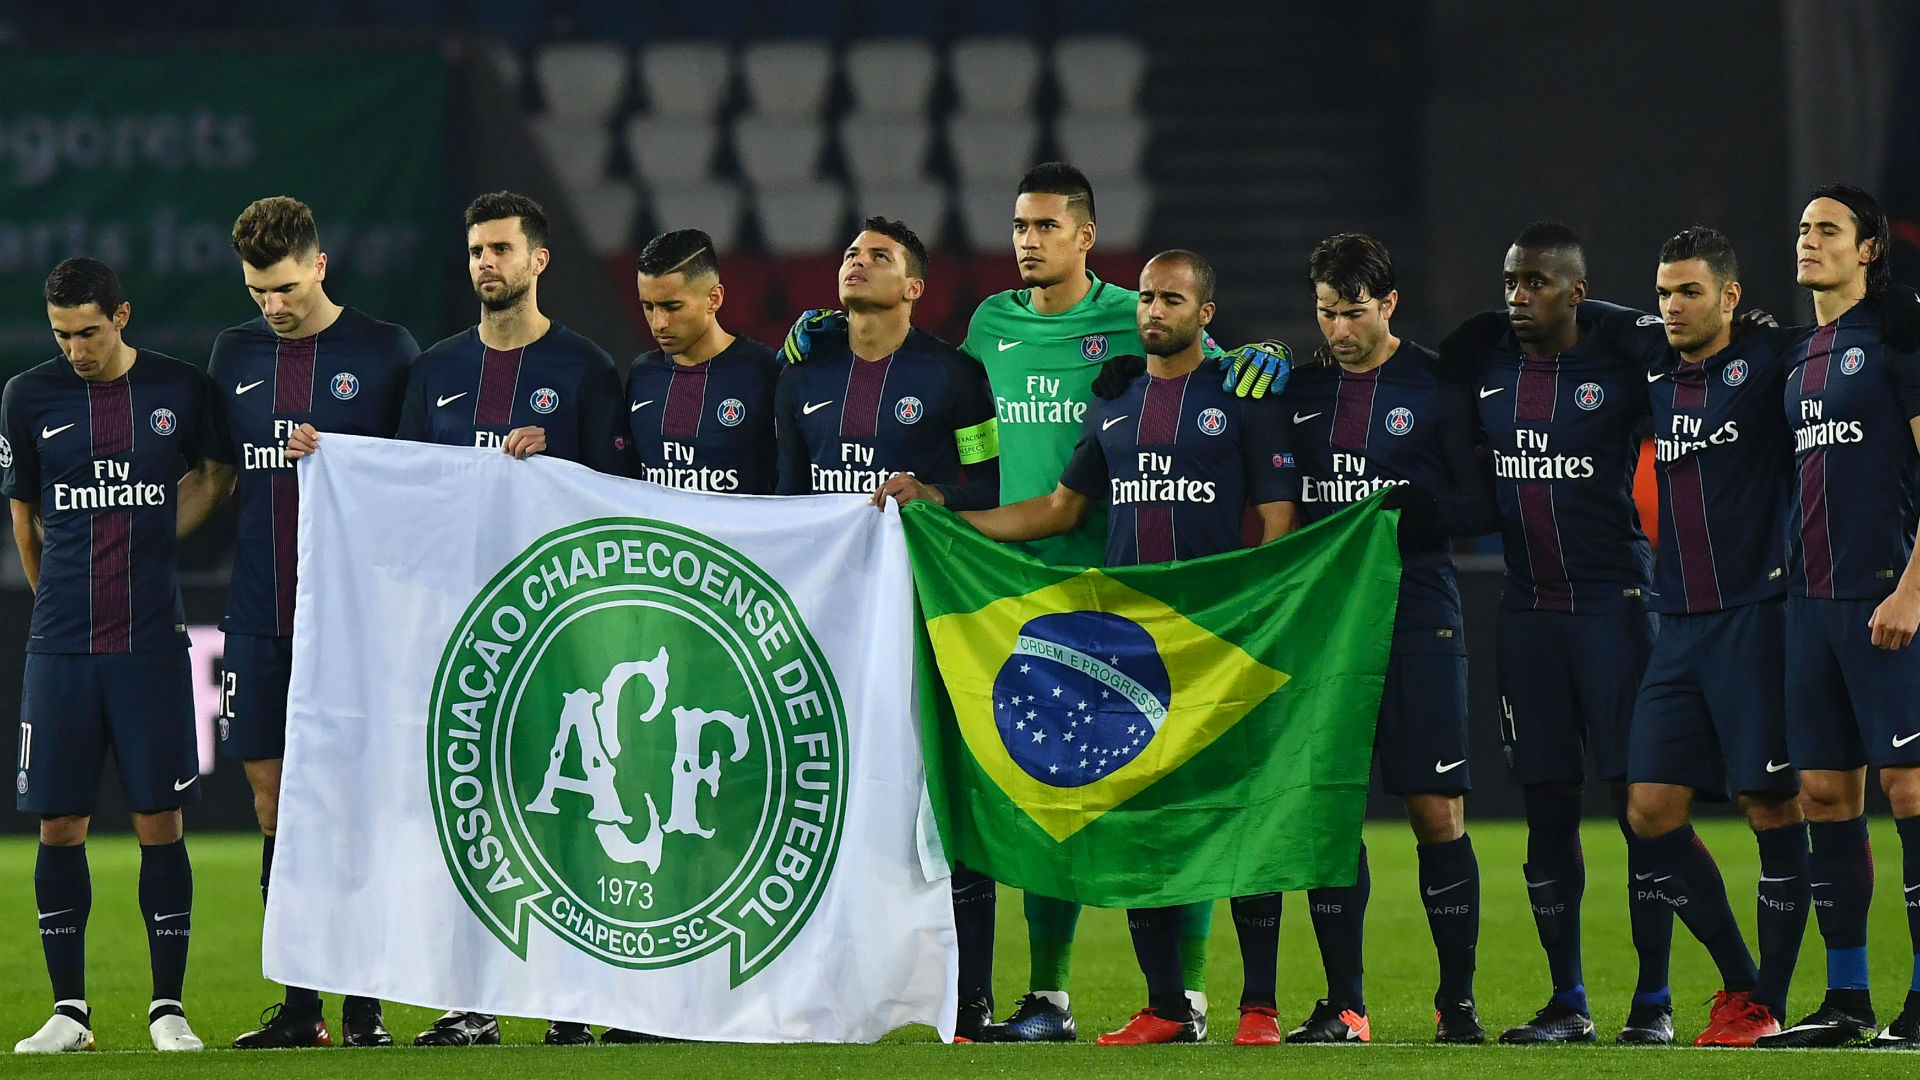 PSG Ludogorets tribute to Chapecoense Champions League 06122016